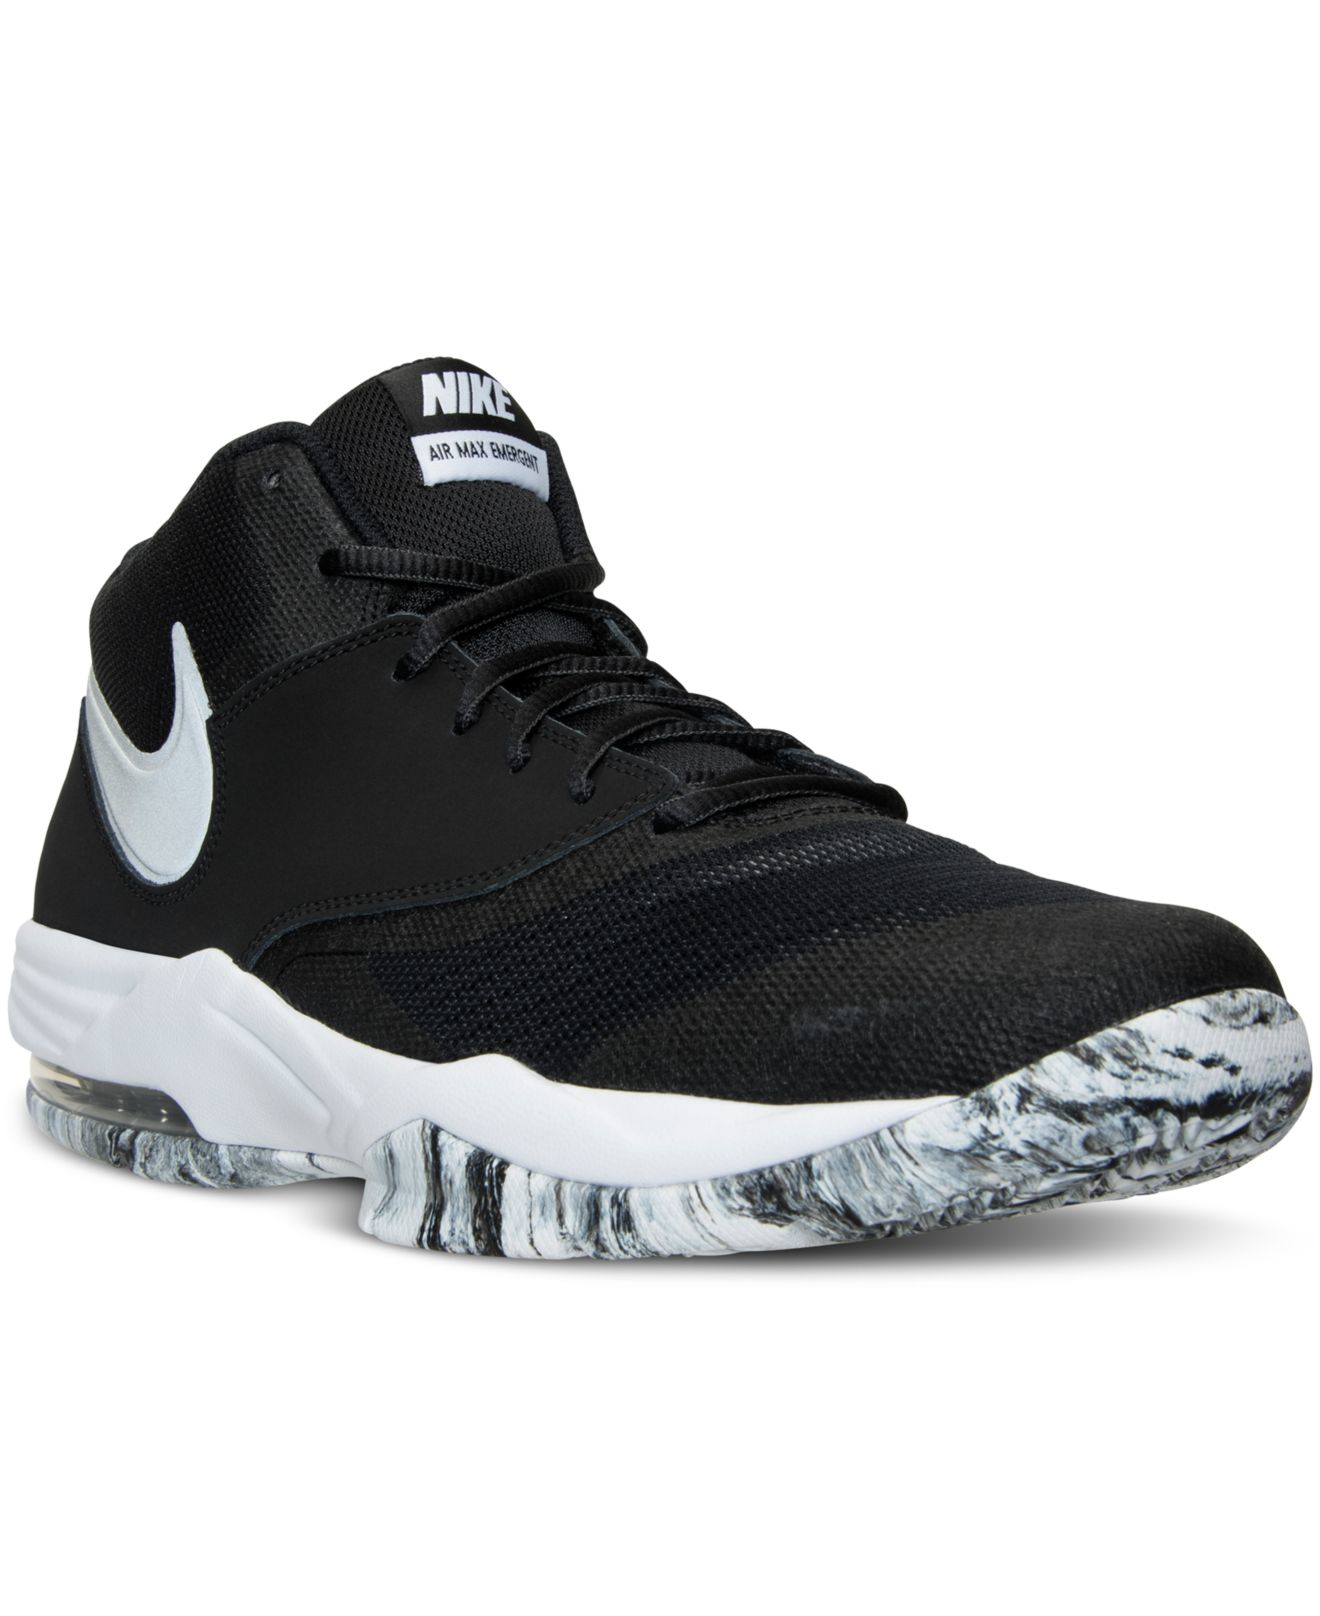 online store 32236 4a35c nike-blackmtllc-slvr-white-an-mens-air-max -emergent-basketball-sneakers-from-finish-line-black -product-4-984326169-normal.jpeg